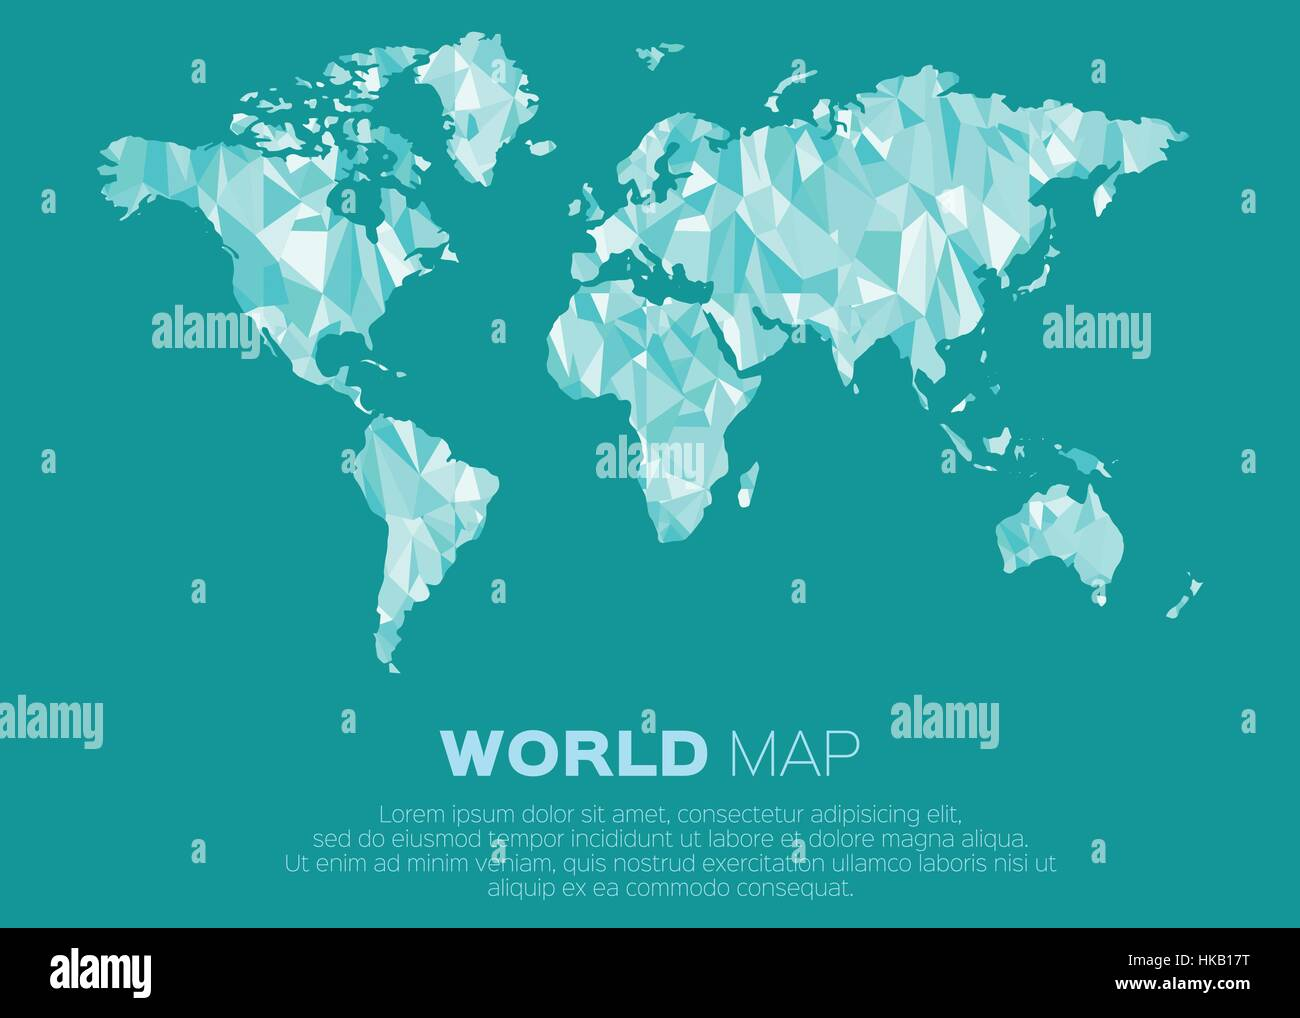 World map background in polygonal style abstract origami color map world map background in polygonal style abstract origami color map design gumiabroncs Choice Image